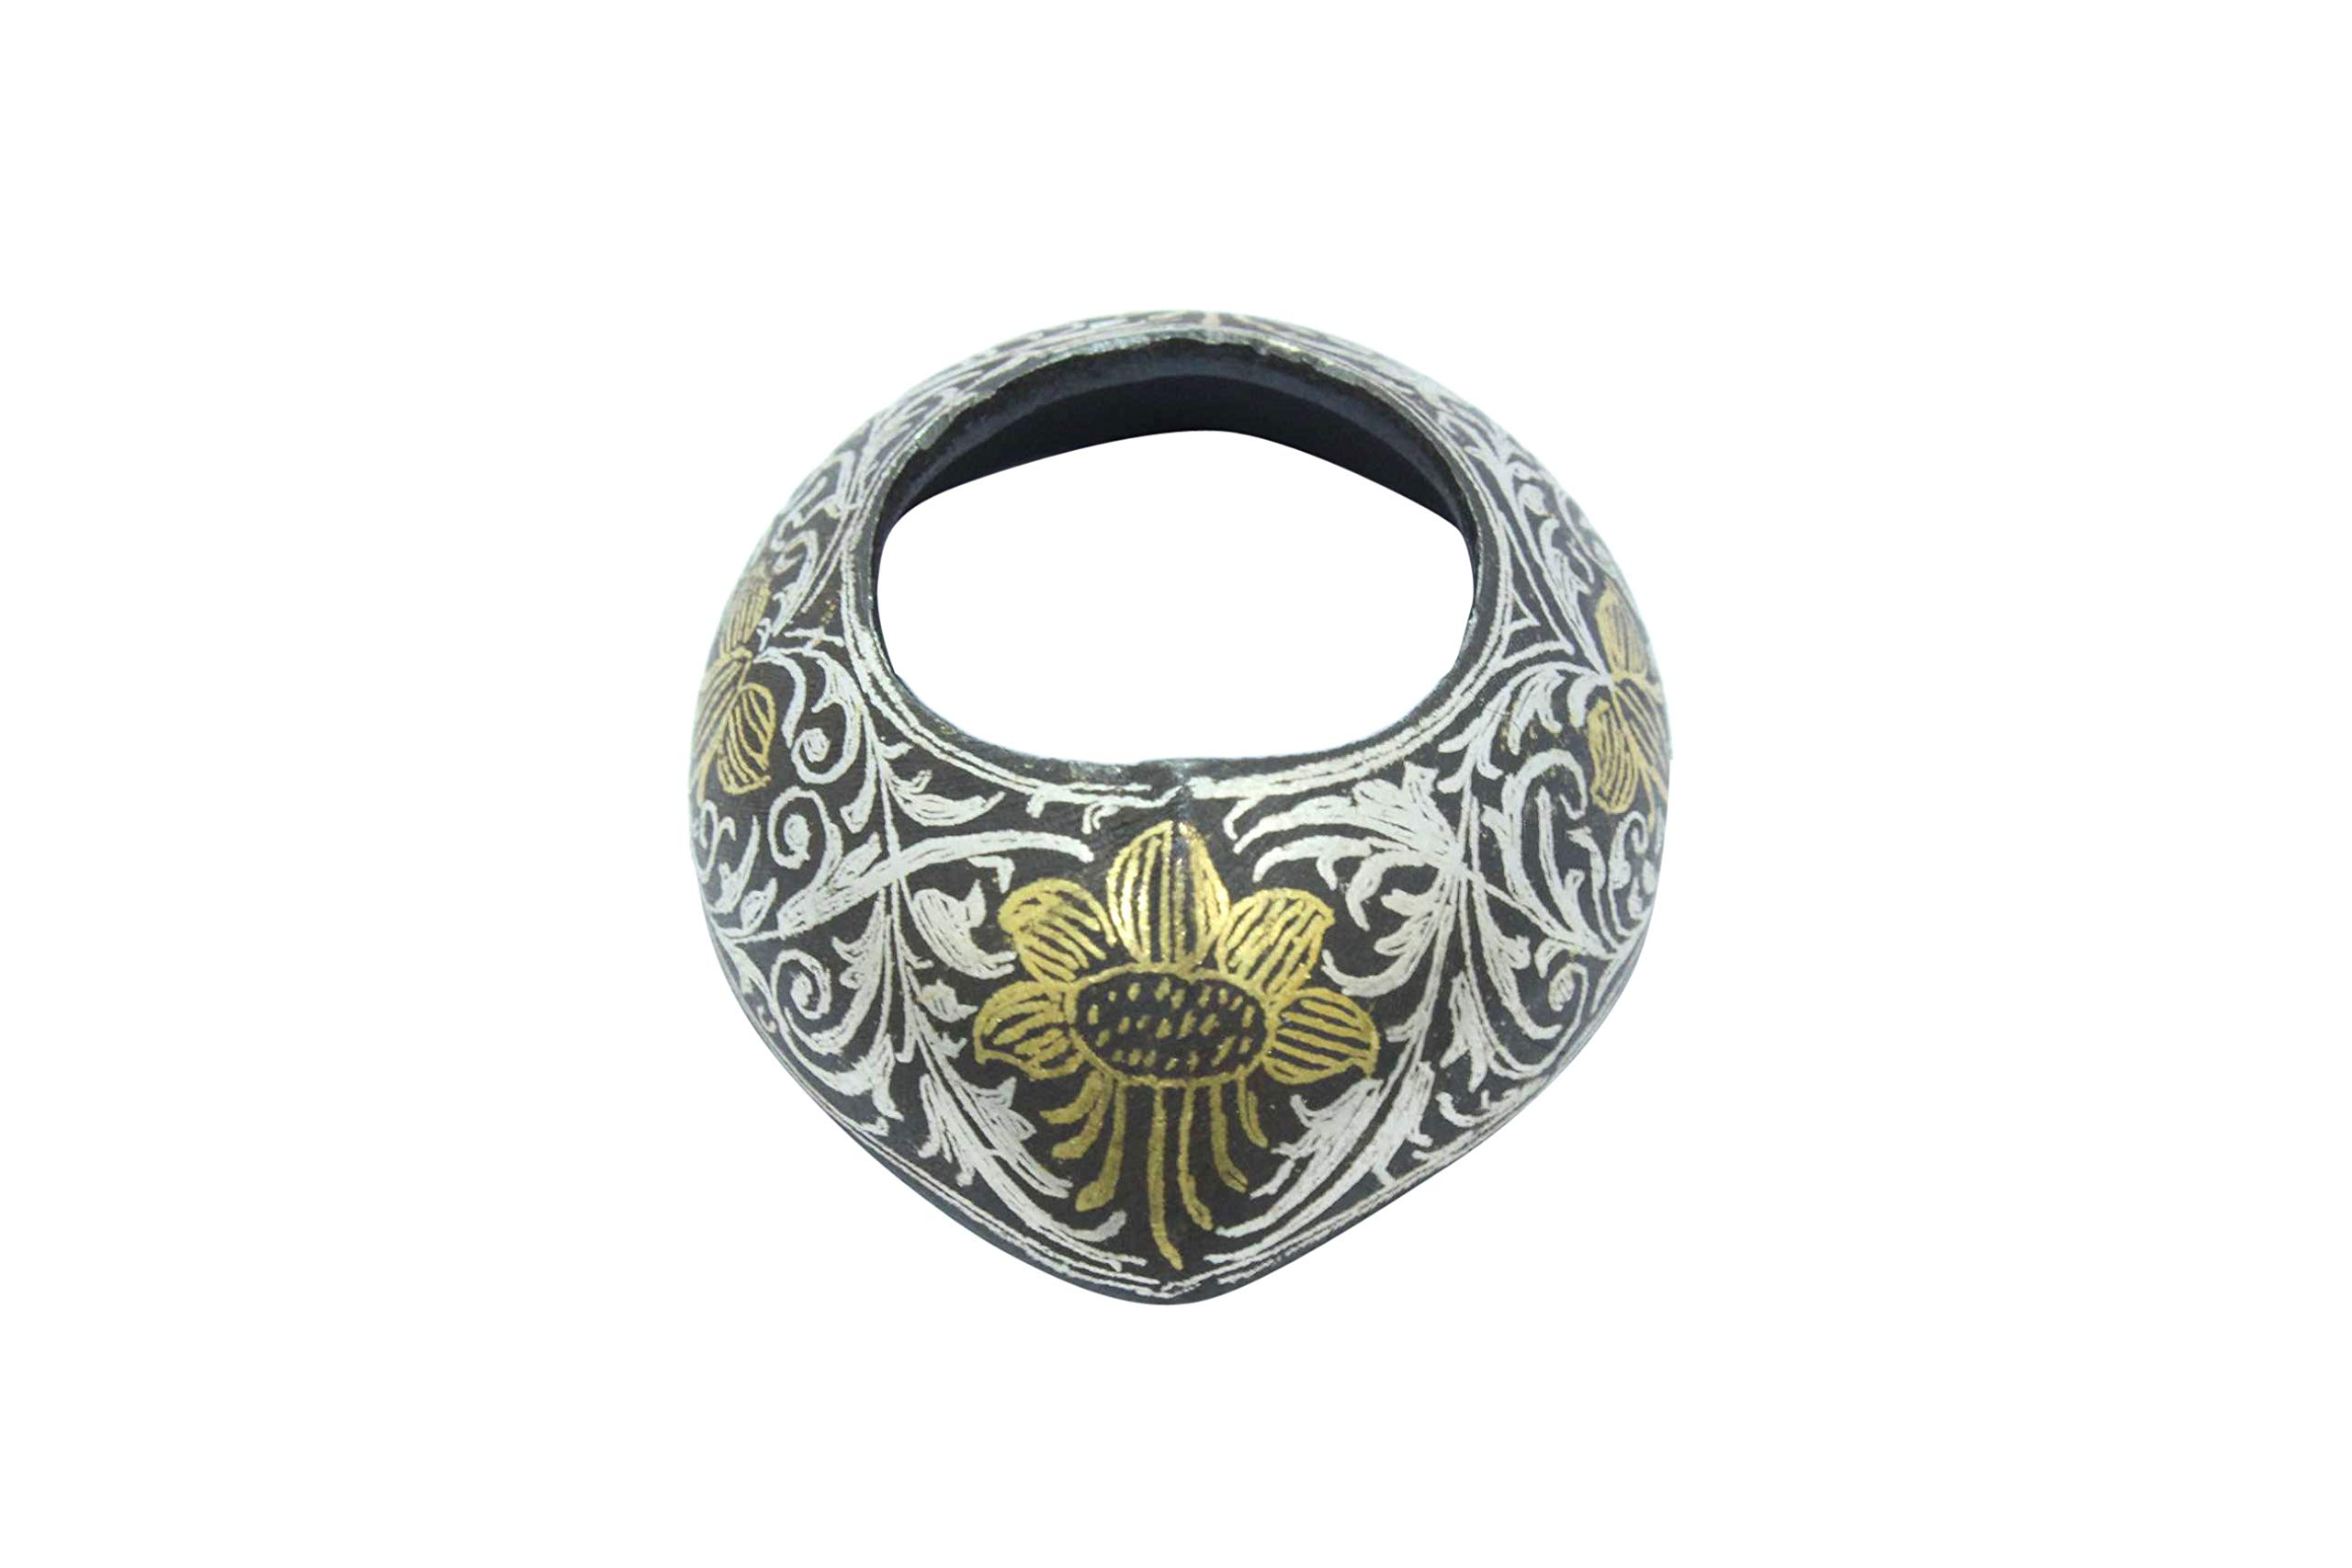 PH Artistic Steel Silver Gold Wire Work Thumb Archery Ring Bow Shooting Handmade Size 11 1/2